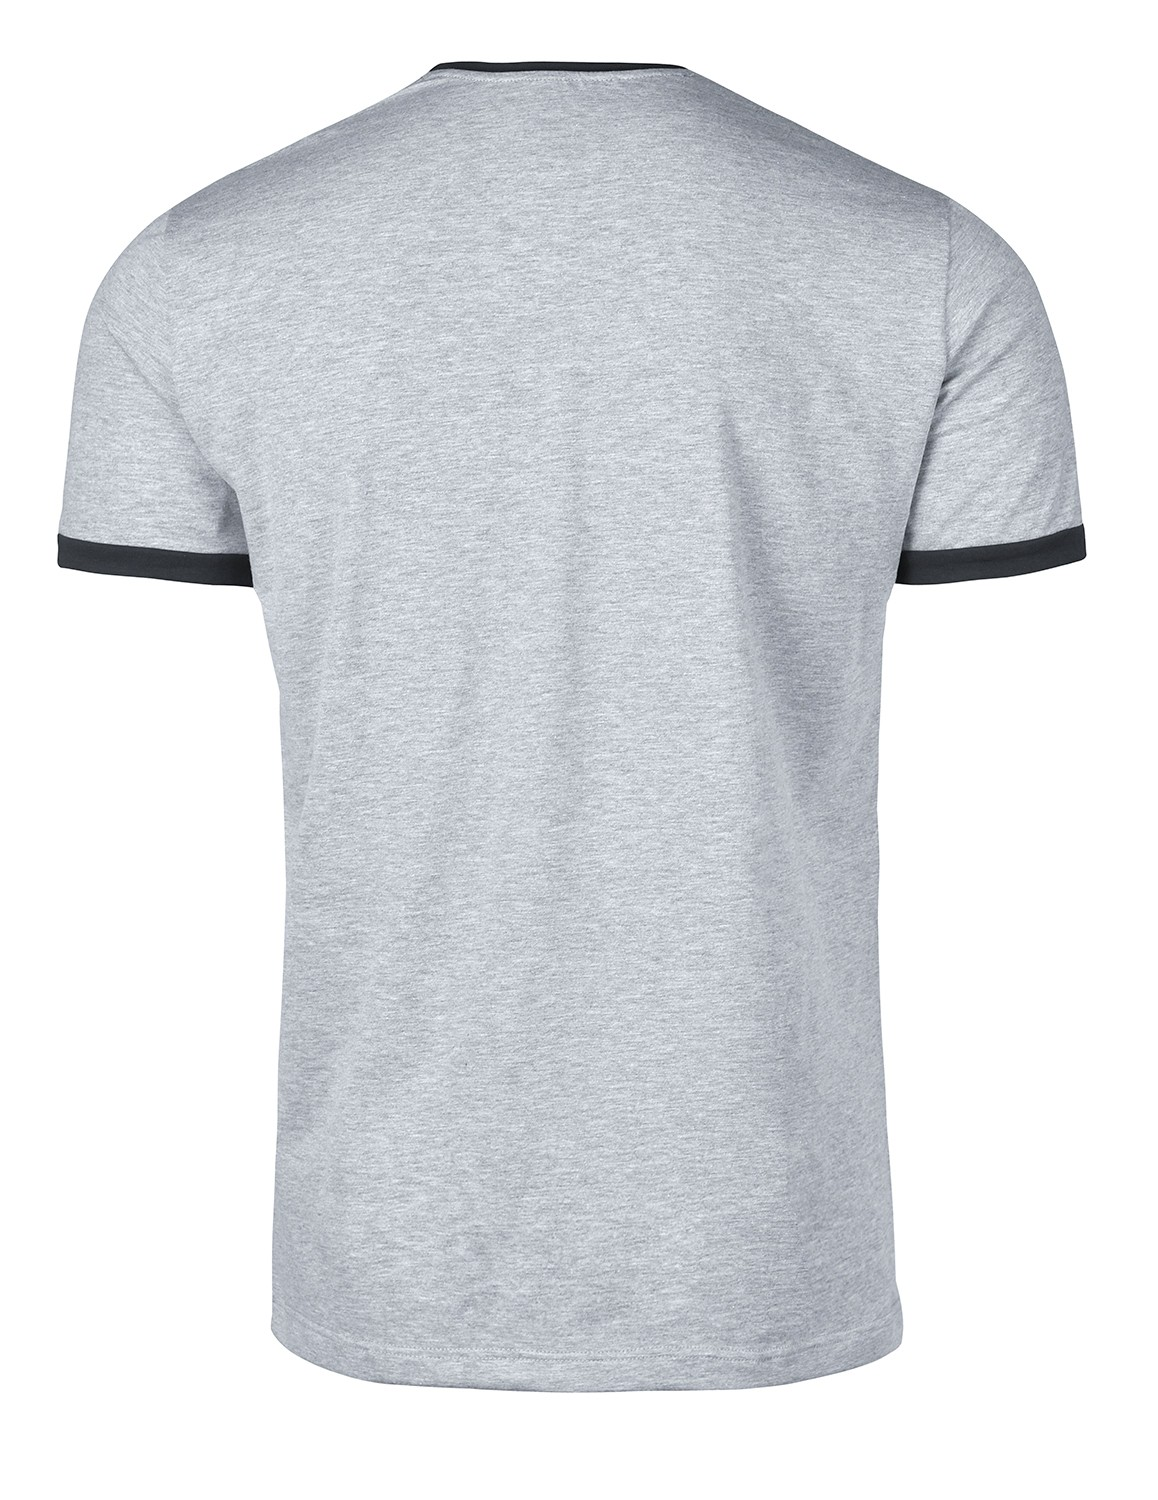 T-Shirt LOGO VISION Light Grey